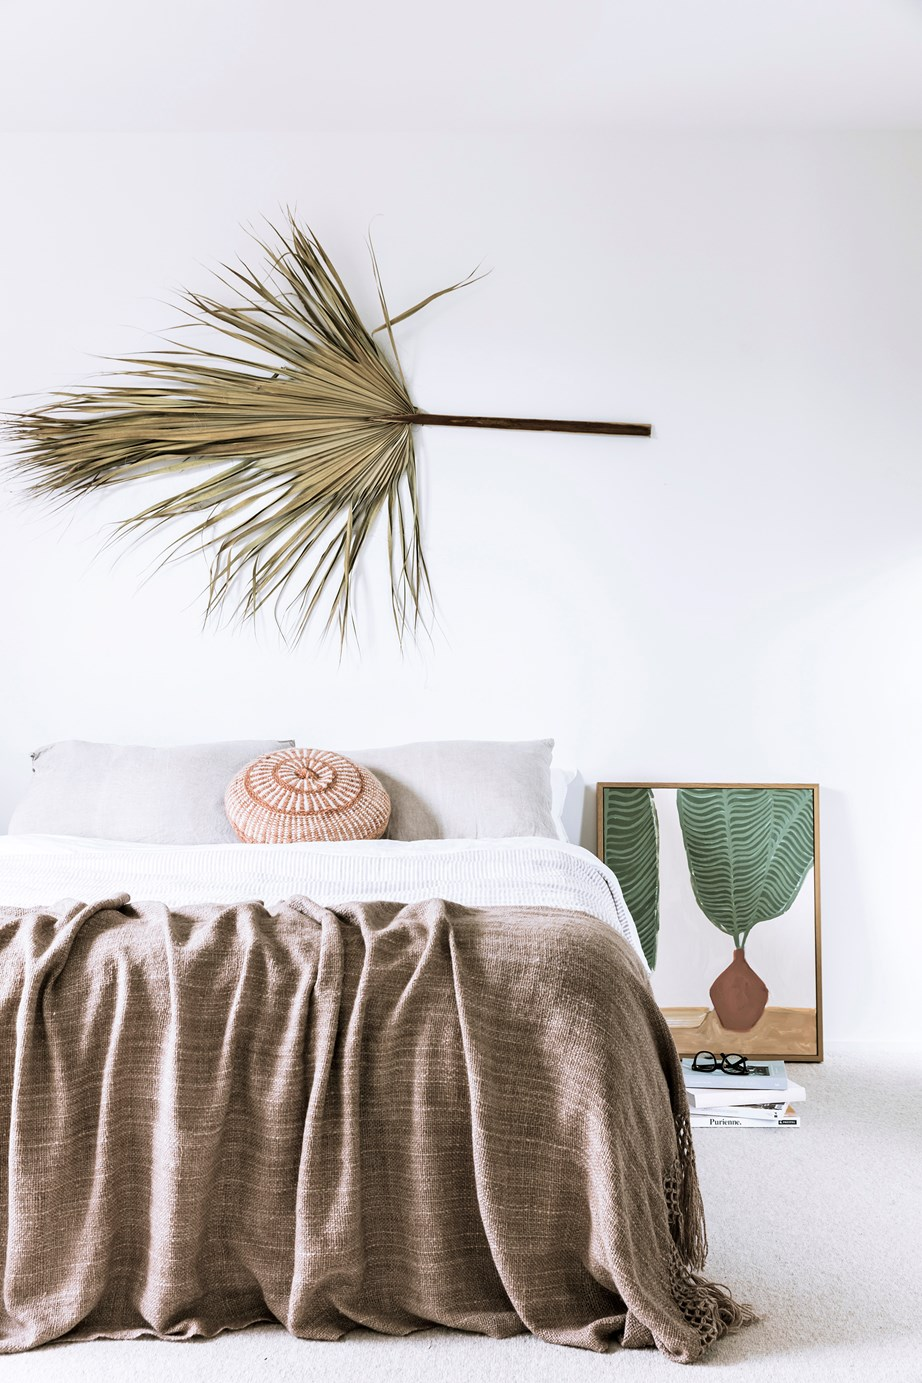 In a nod to the home's coastal location, the couple's bedroom features textural woven bedding, a tropical-themed artwork and a dried palm frond-turned-wall feature.